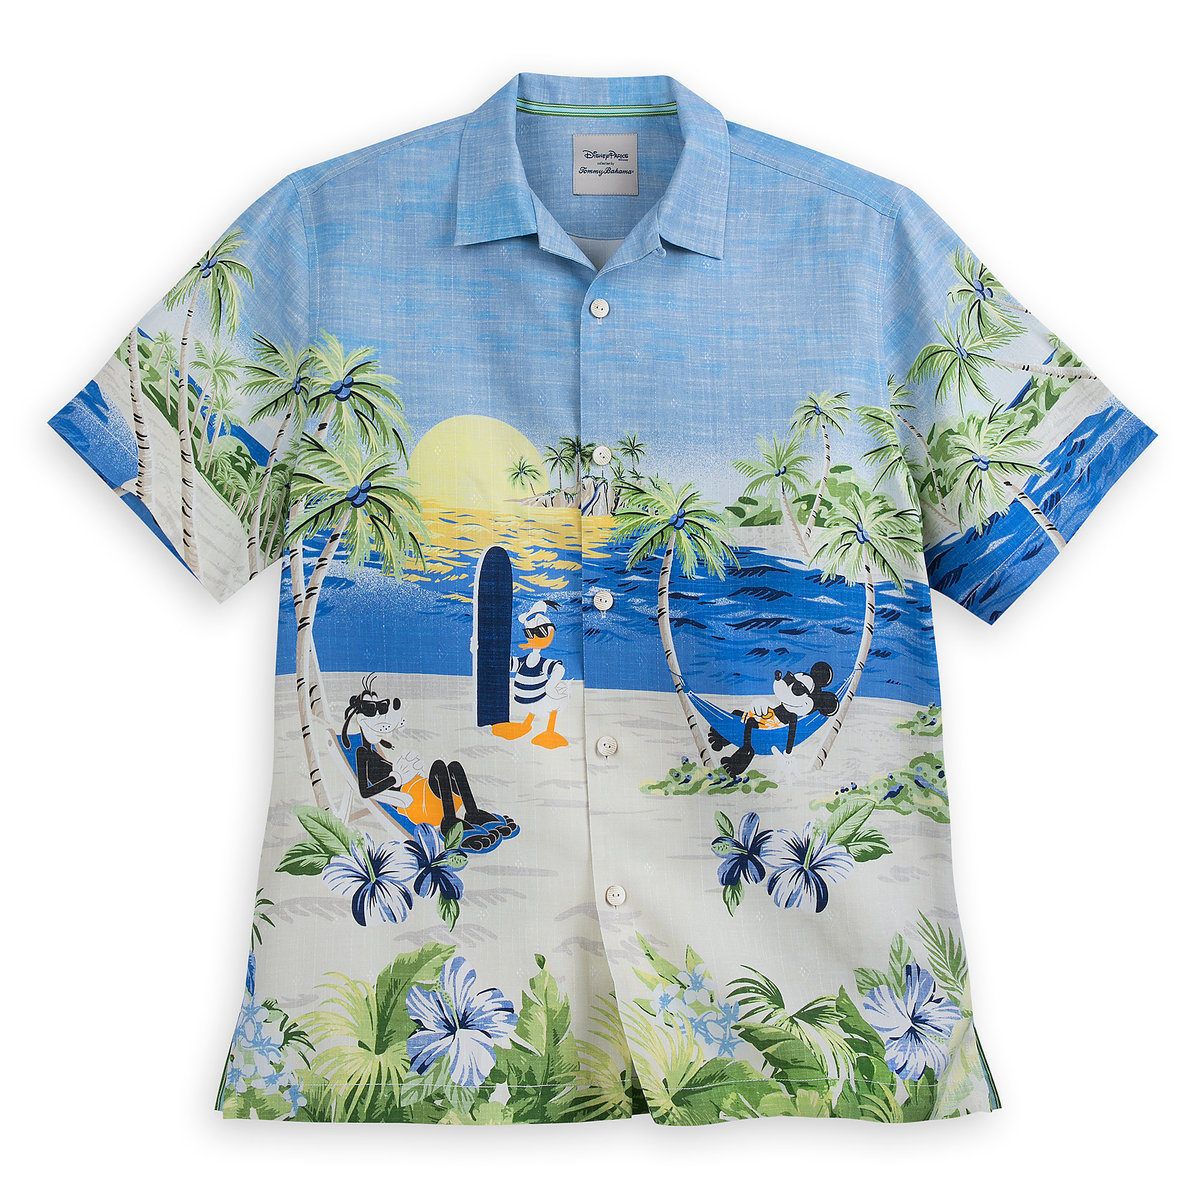 3da8e3f2 Product Image of Mickey Mouse and Friends Silk Shirt for Men by Tommy Bahama  # 1